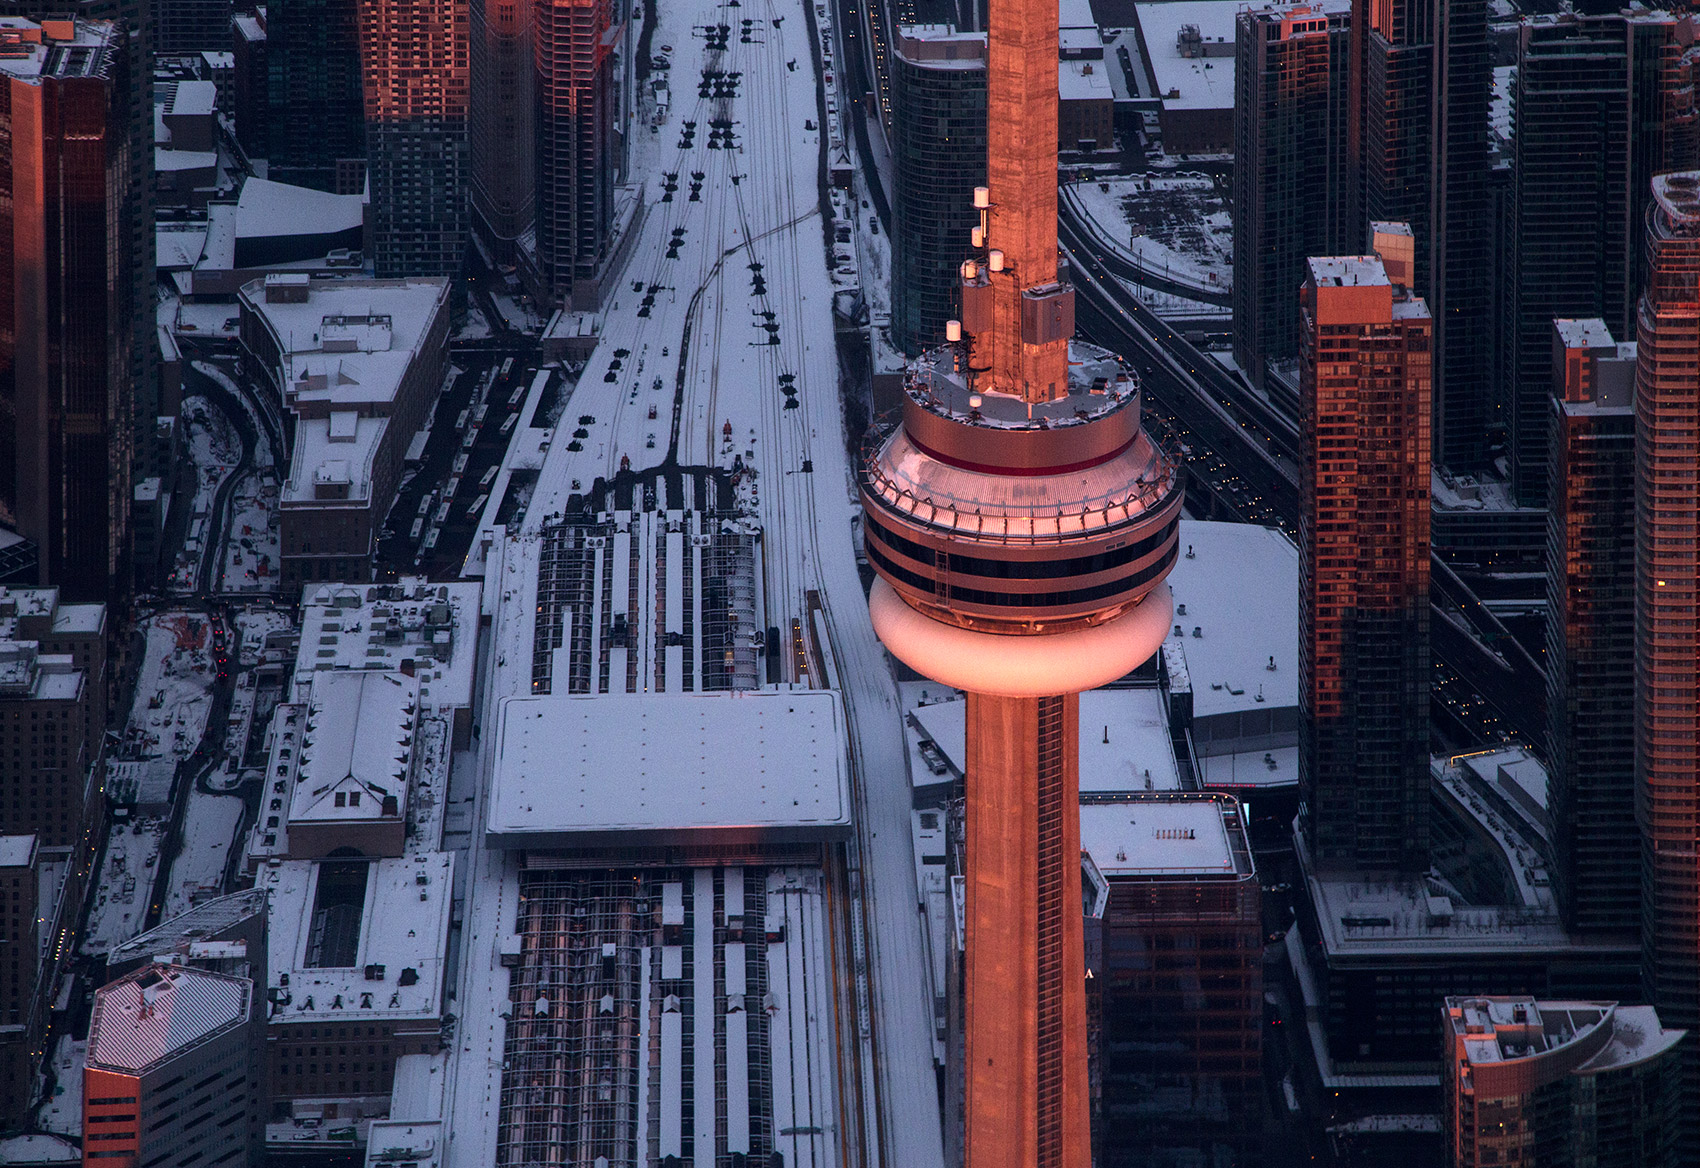 20150223. Getting up close and personal with the CN Tower at 200